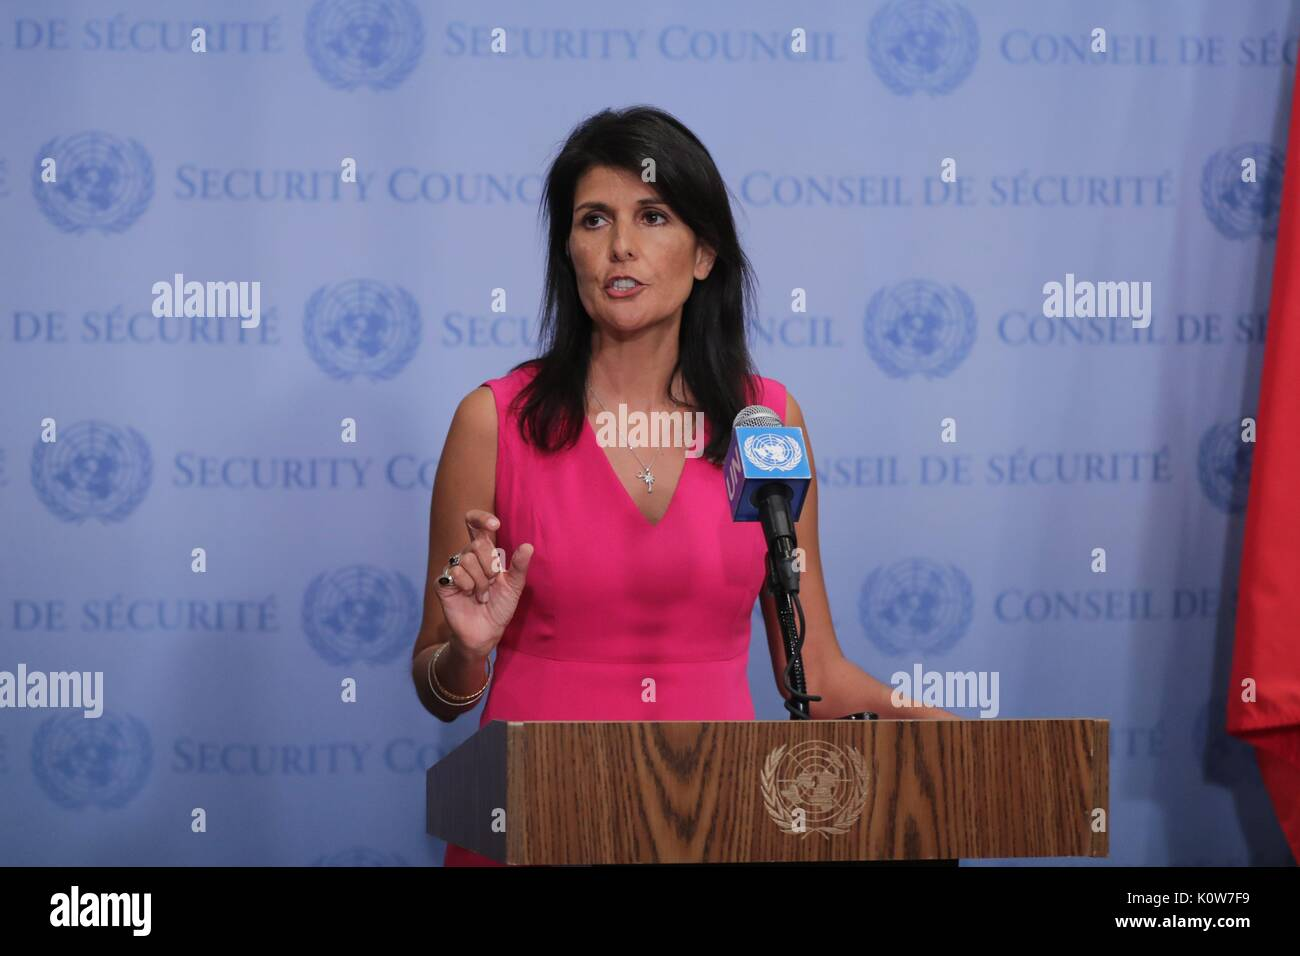 United Nations, New York, USA, August 25 2017 - Nikki Haley United States Ambassador to the UN, addresses the press on Her visit to the IAEA today at the UN Headquarters in New York. Photo: Luiz Rampelotto/EuropaNewswire | usage worldwide - Stock Image